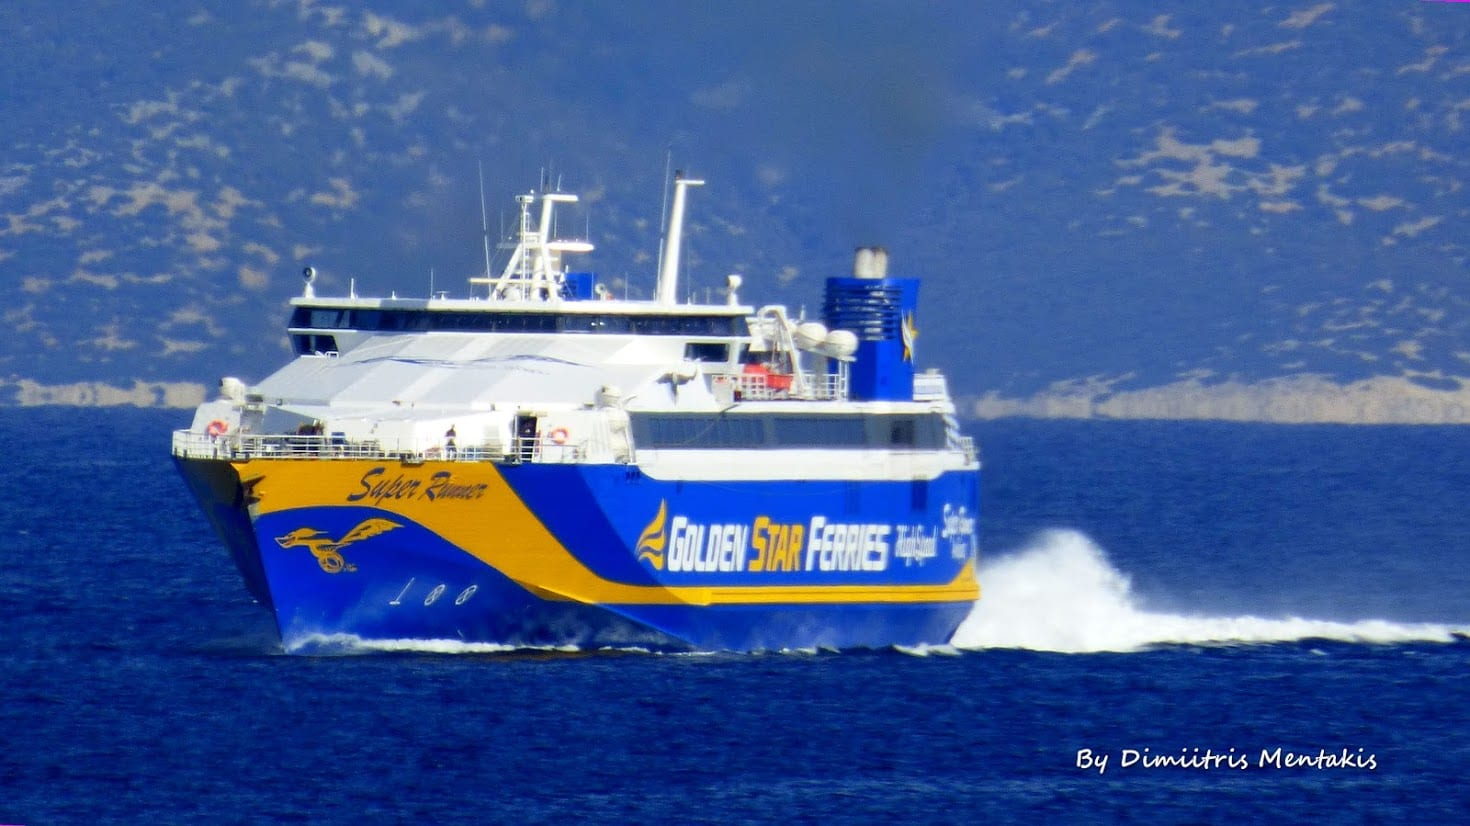 Superrunner ferry takes passengers from Mykonos to Santorini